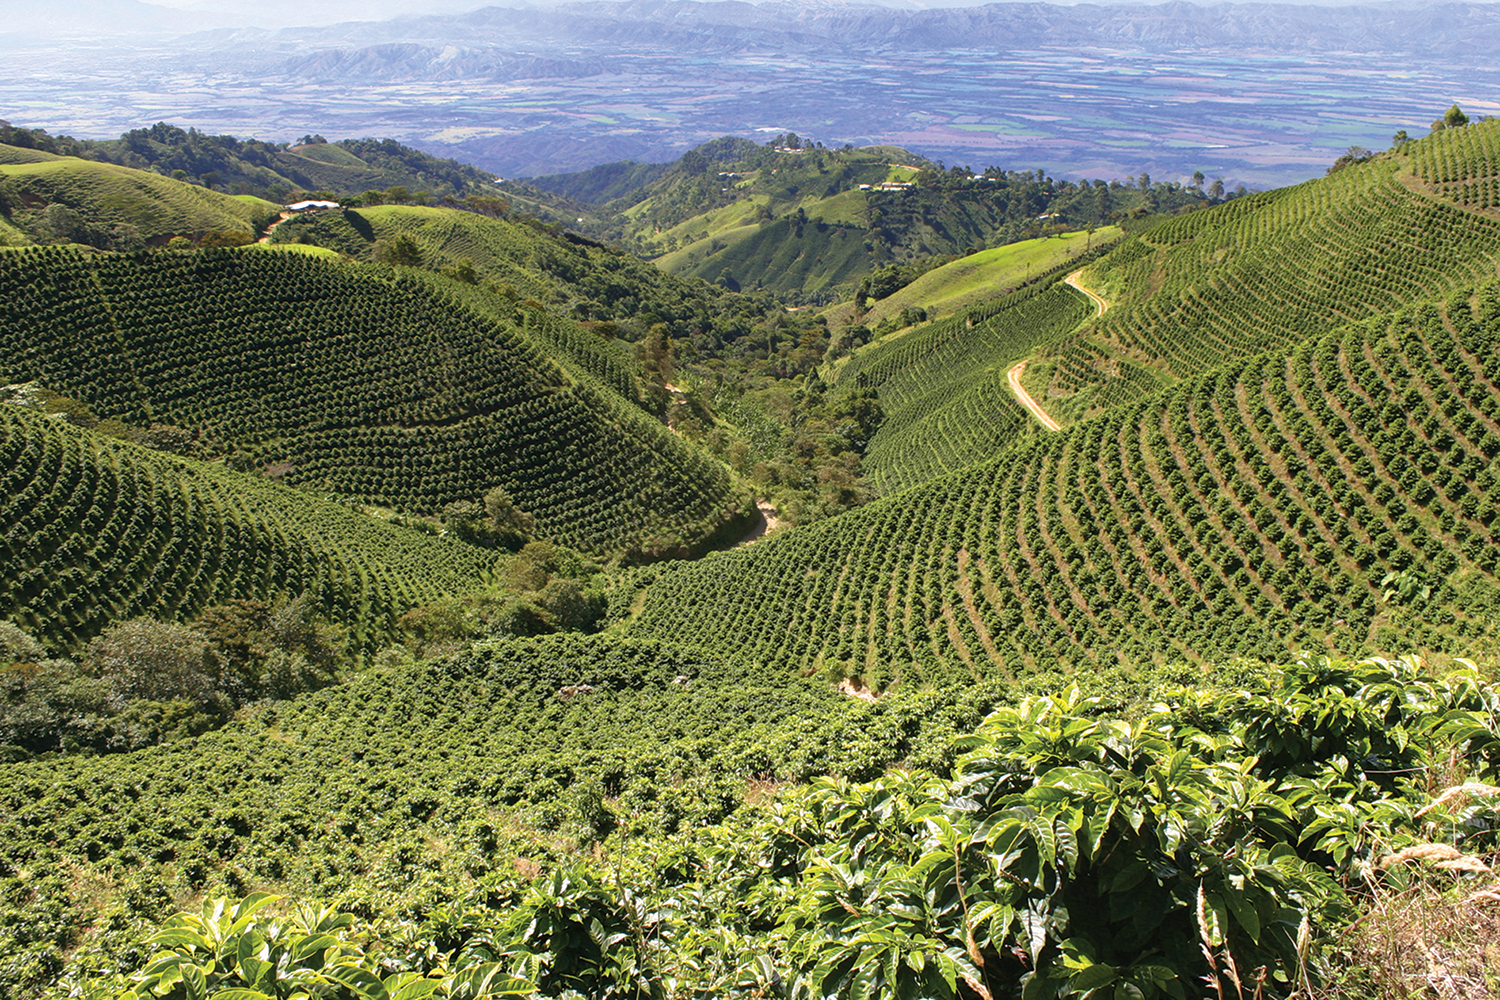 A typical coffee plantation with rolling hills of neatly-lined rows of coffee plants exposed to the full sun